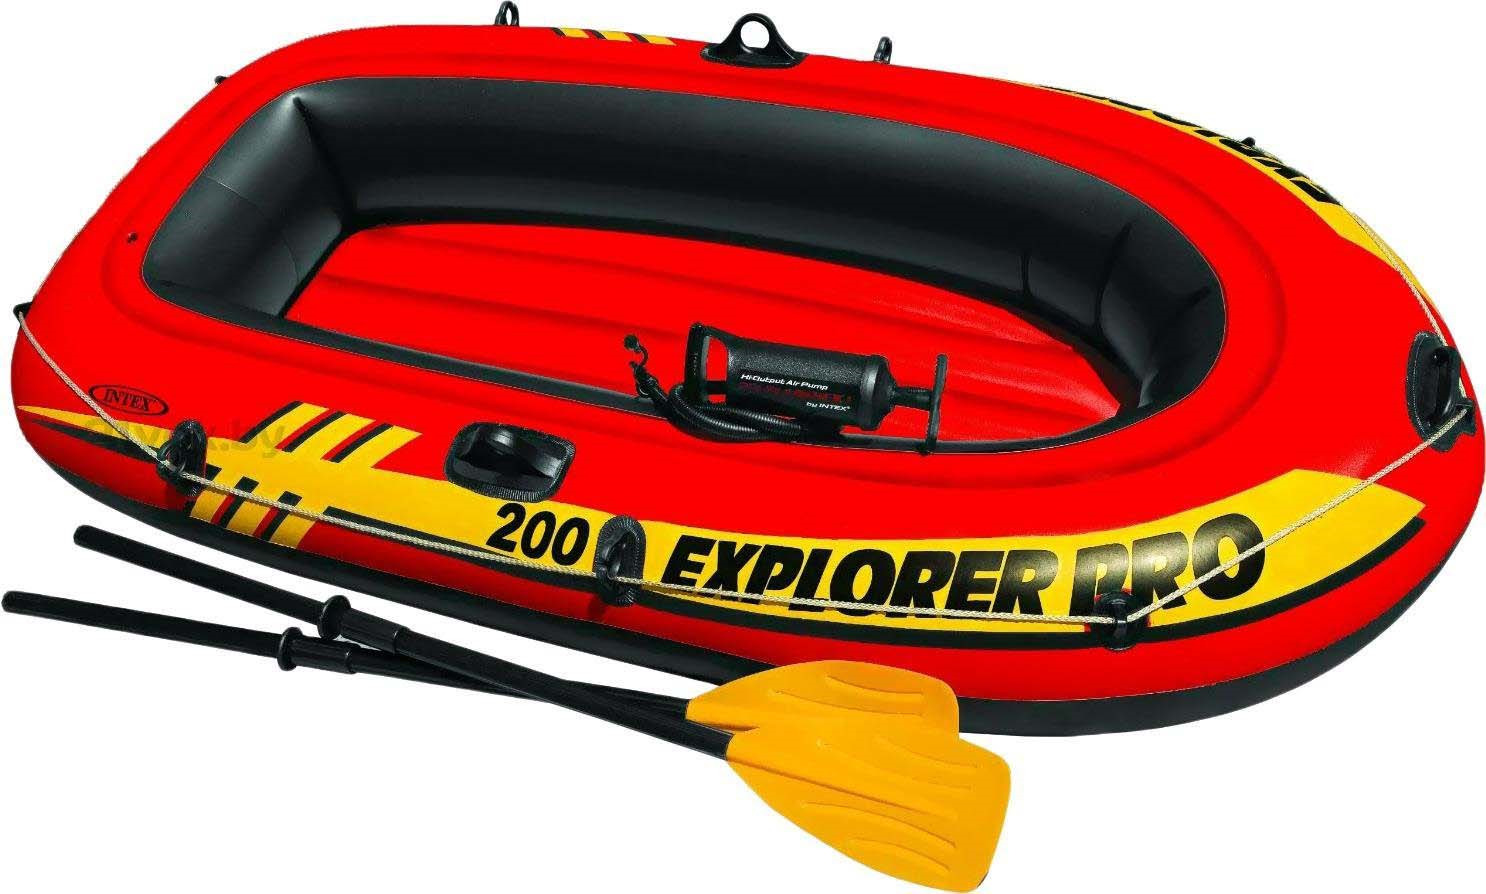 Лодка надувная Intex Explorer Pro 200 Set, 58357NP, с веслами и насосом, до 120 кг, 196 х 102 х 33 см